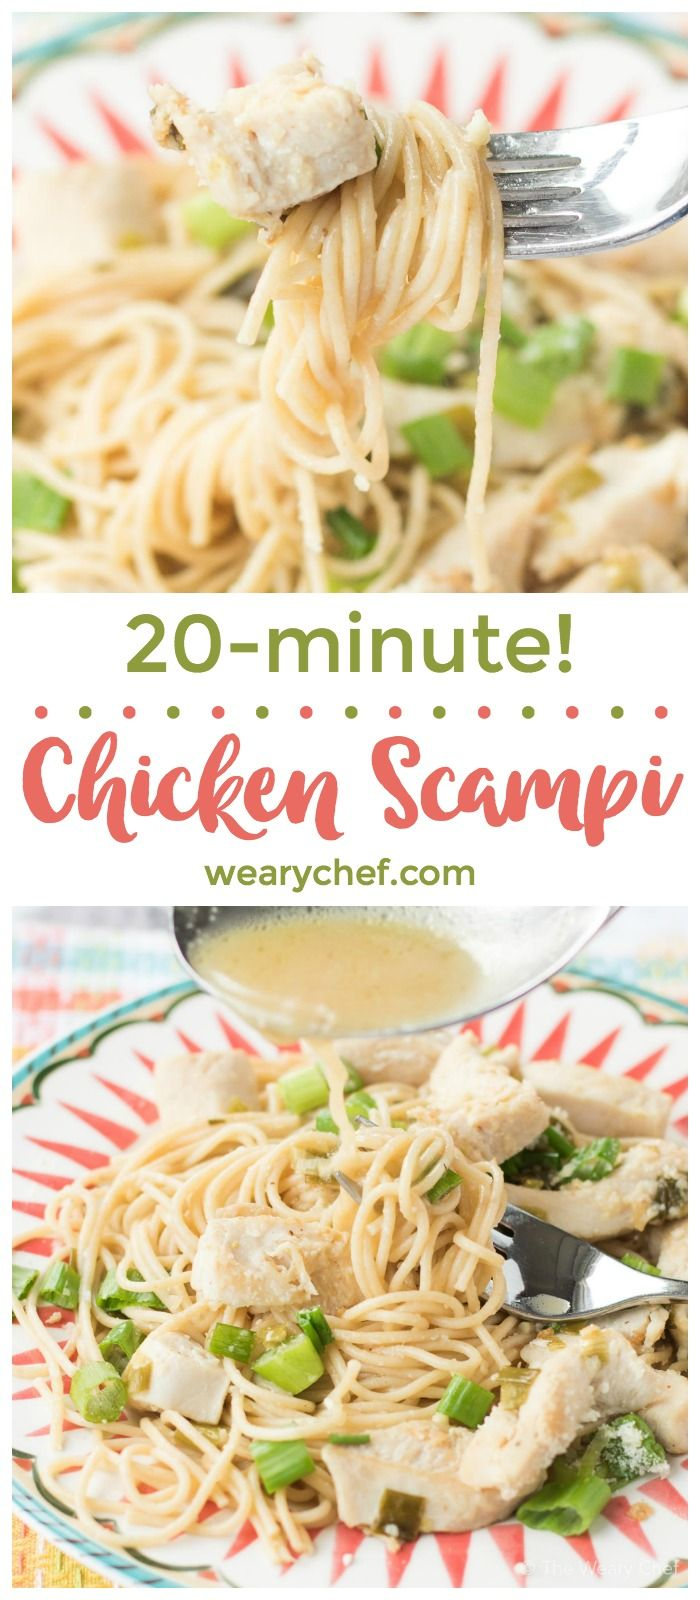 This flavorful quick chicken scampi recipe is ready only about 20 minutes! It's a perfect weeknight family meal or just right for guests!